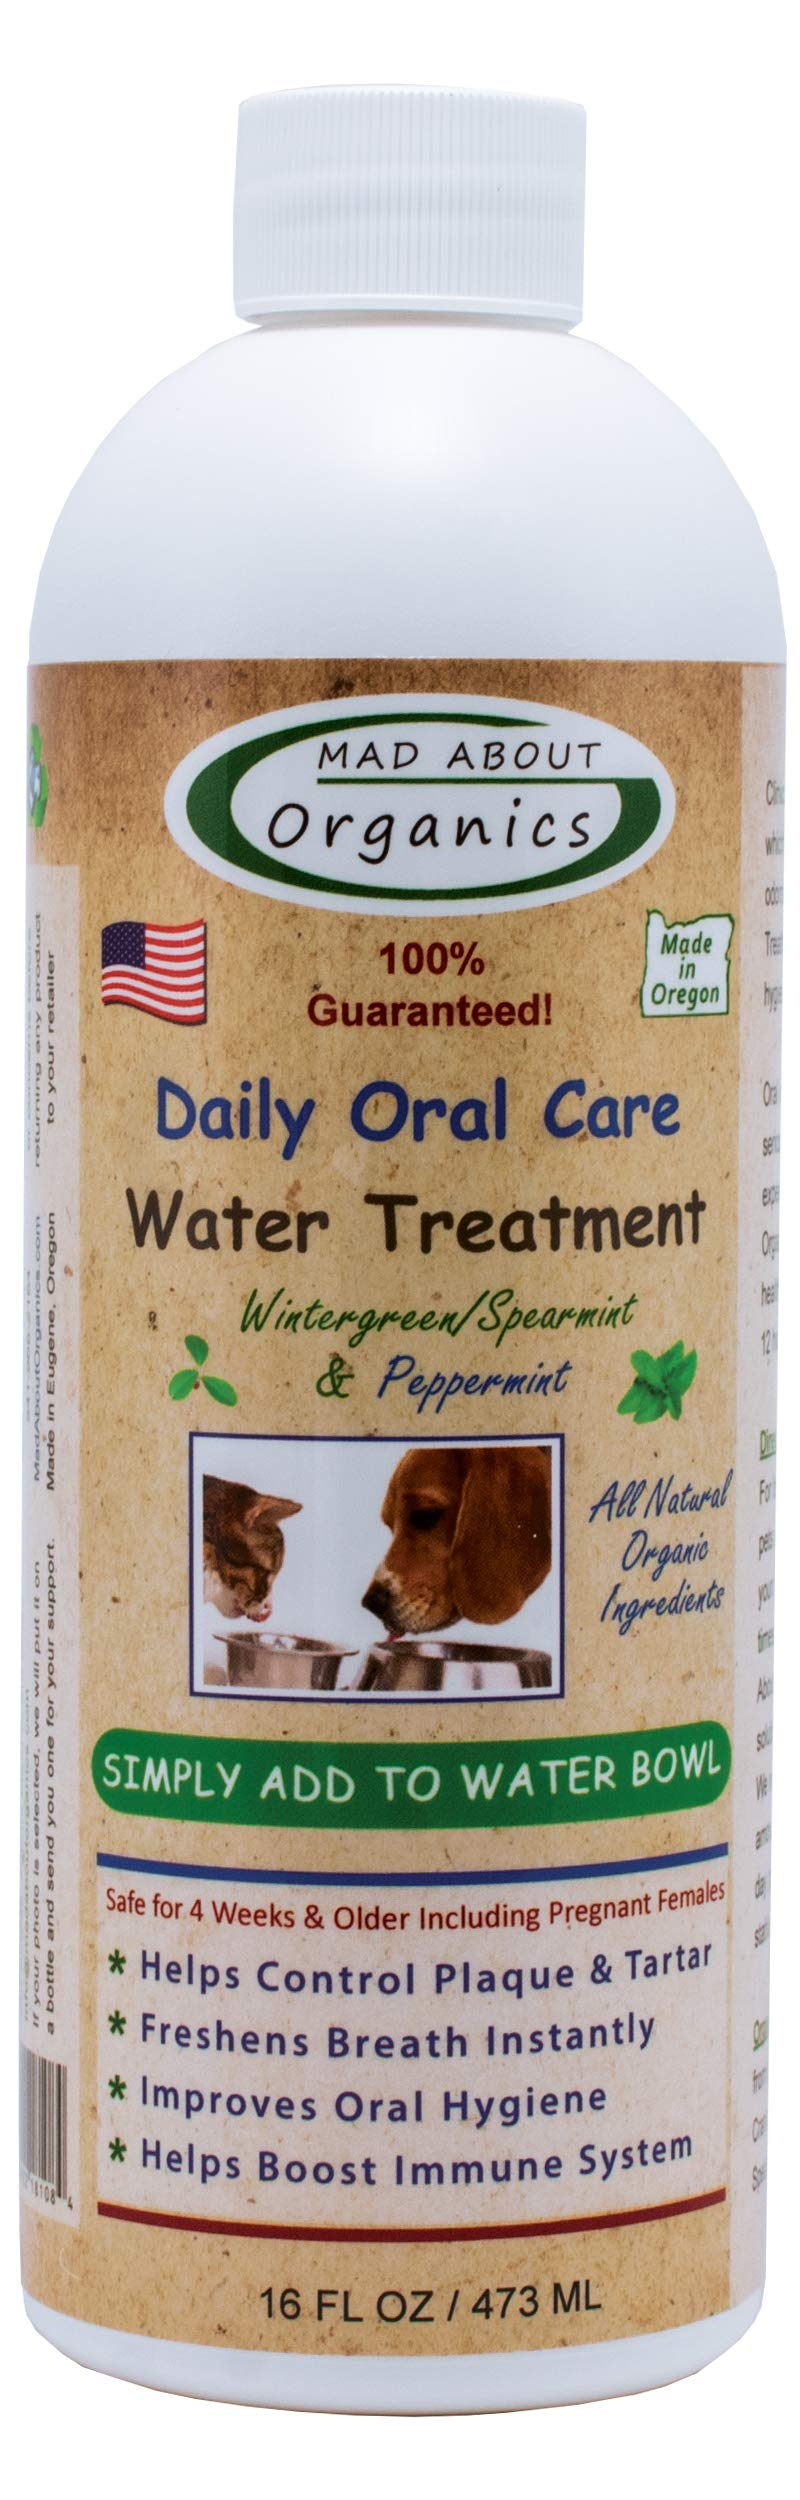 Mad About Organics Daily Oral Care Water Treatment 16oz